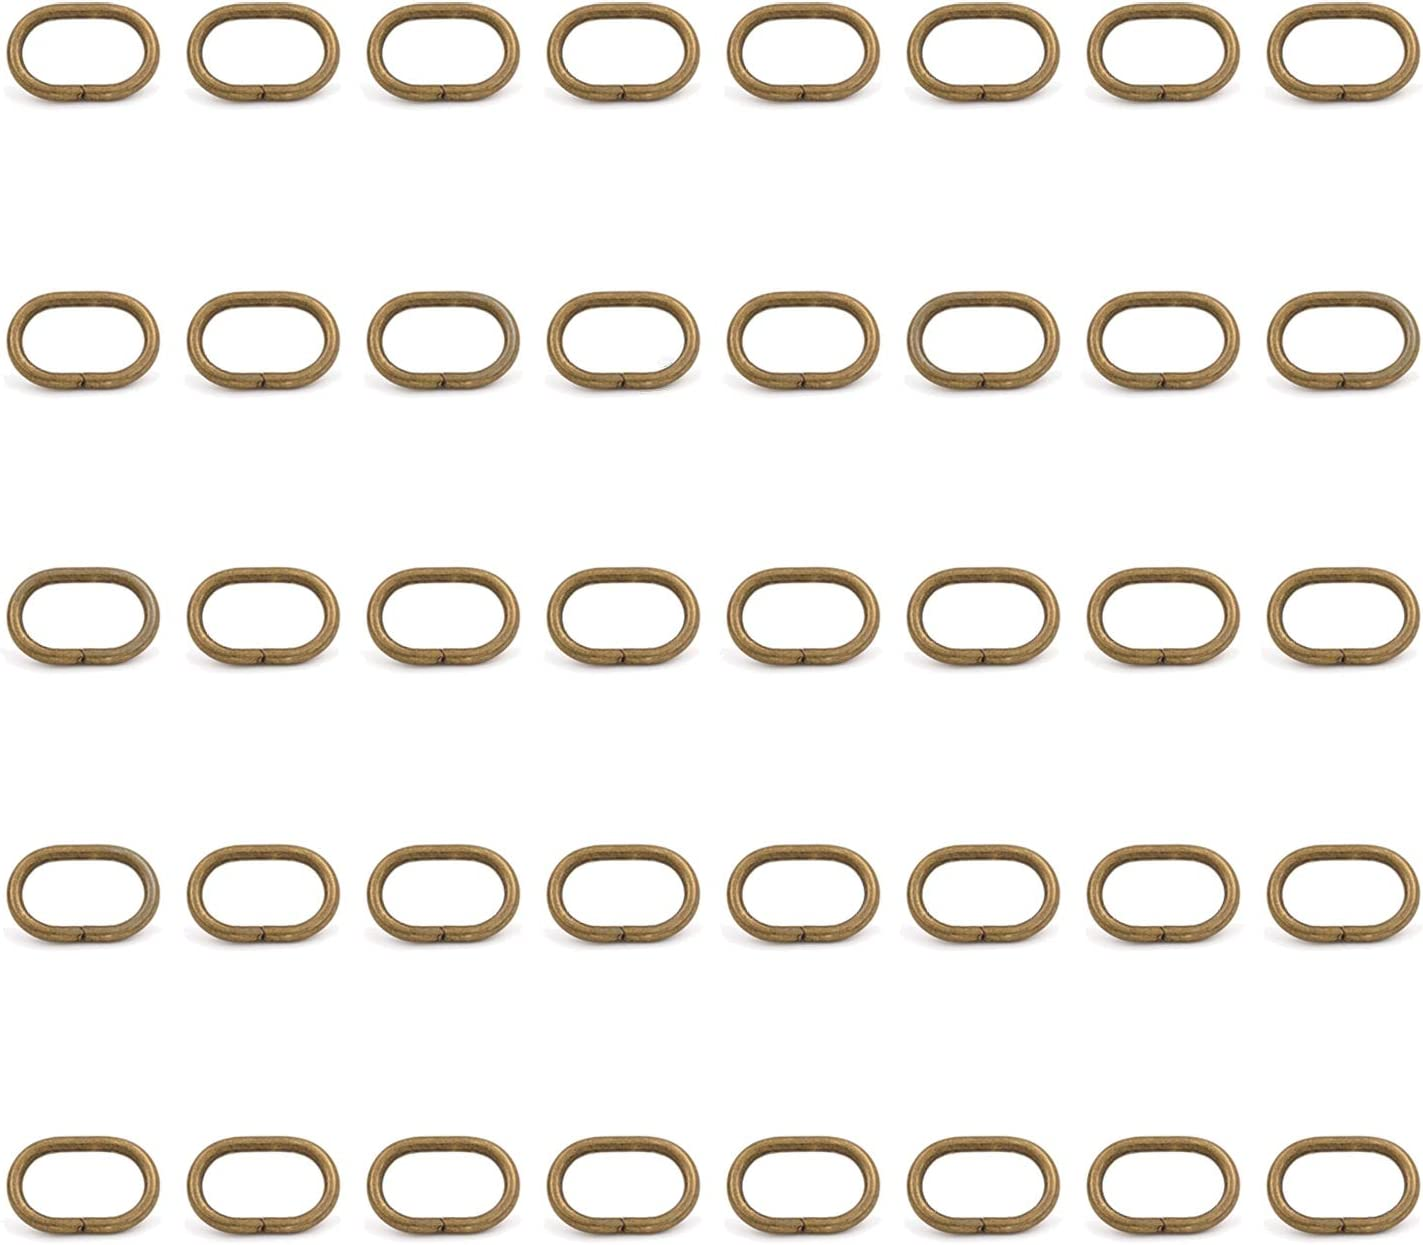 Pack of 10 Handbag Straps BIKICOCO 2 cm Metal Oval Ring Oval Loops Non Welded for Leather Purse Bags Bronze